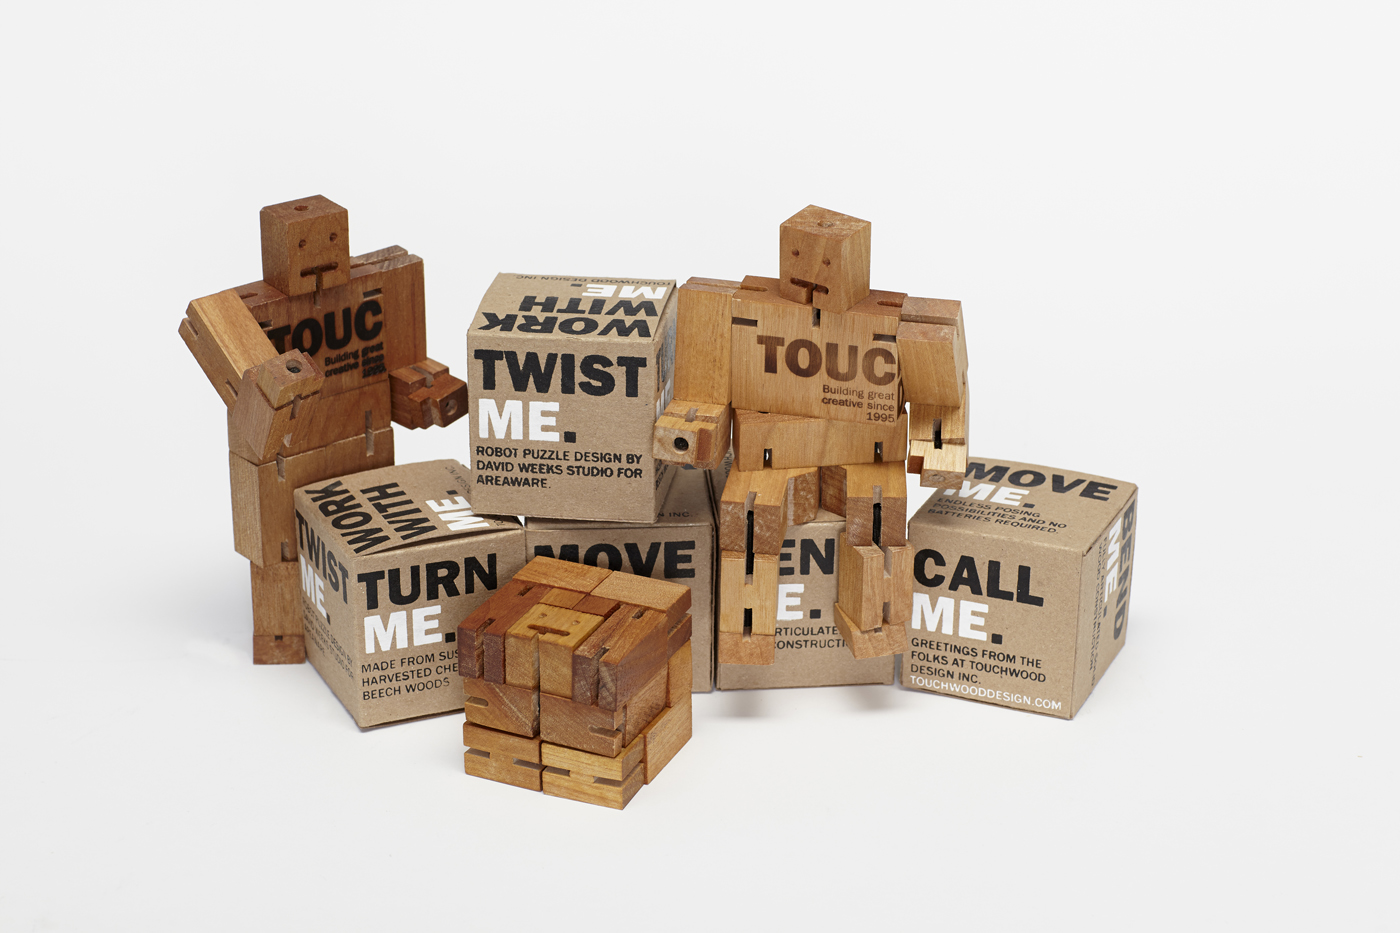 Packaging for the wooden robot. Silk screened brown boxes and a wooden puzzle that transforms into a robot.